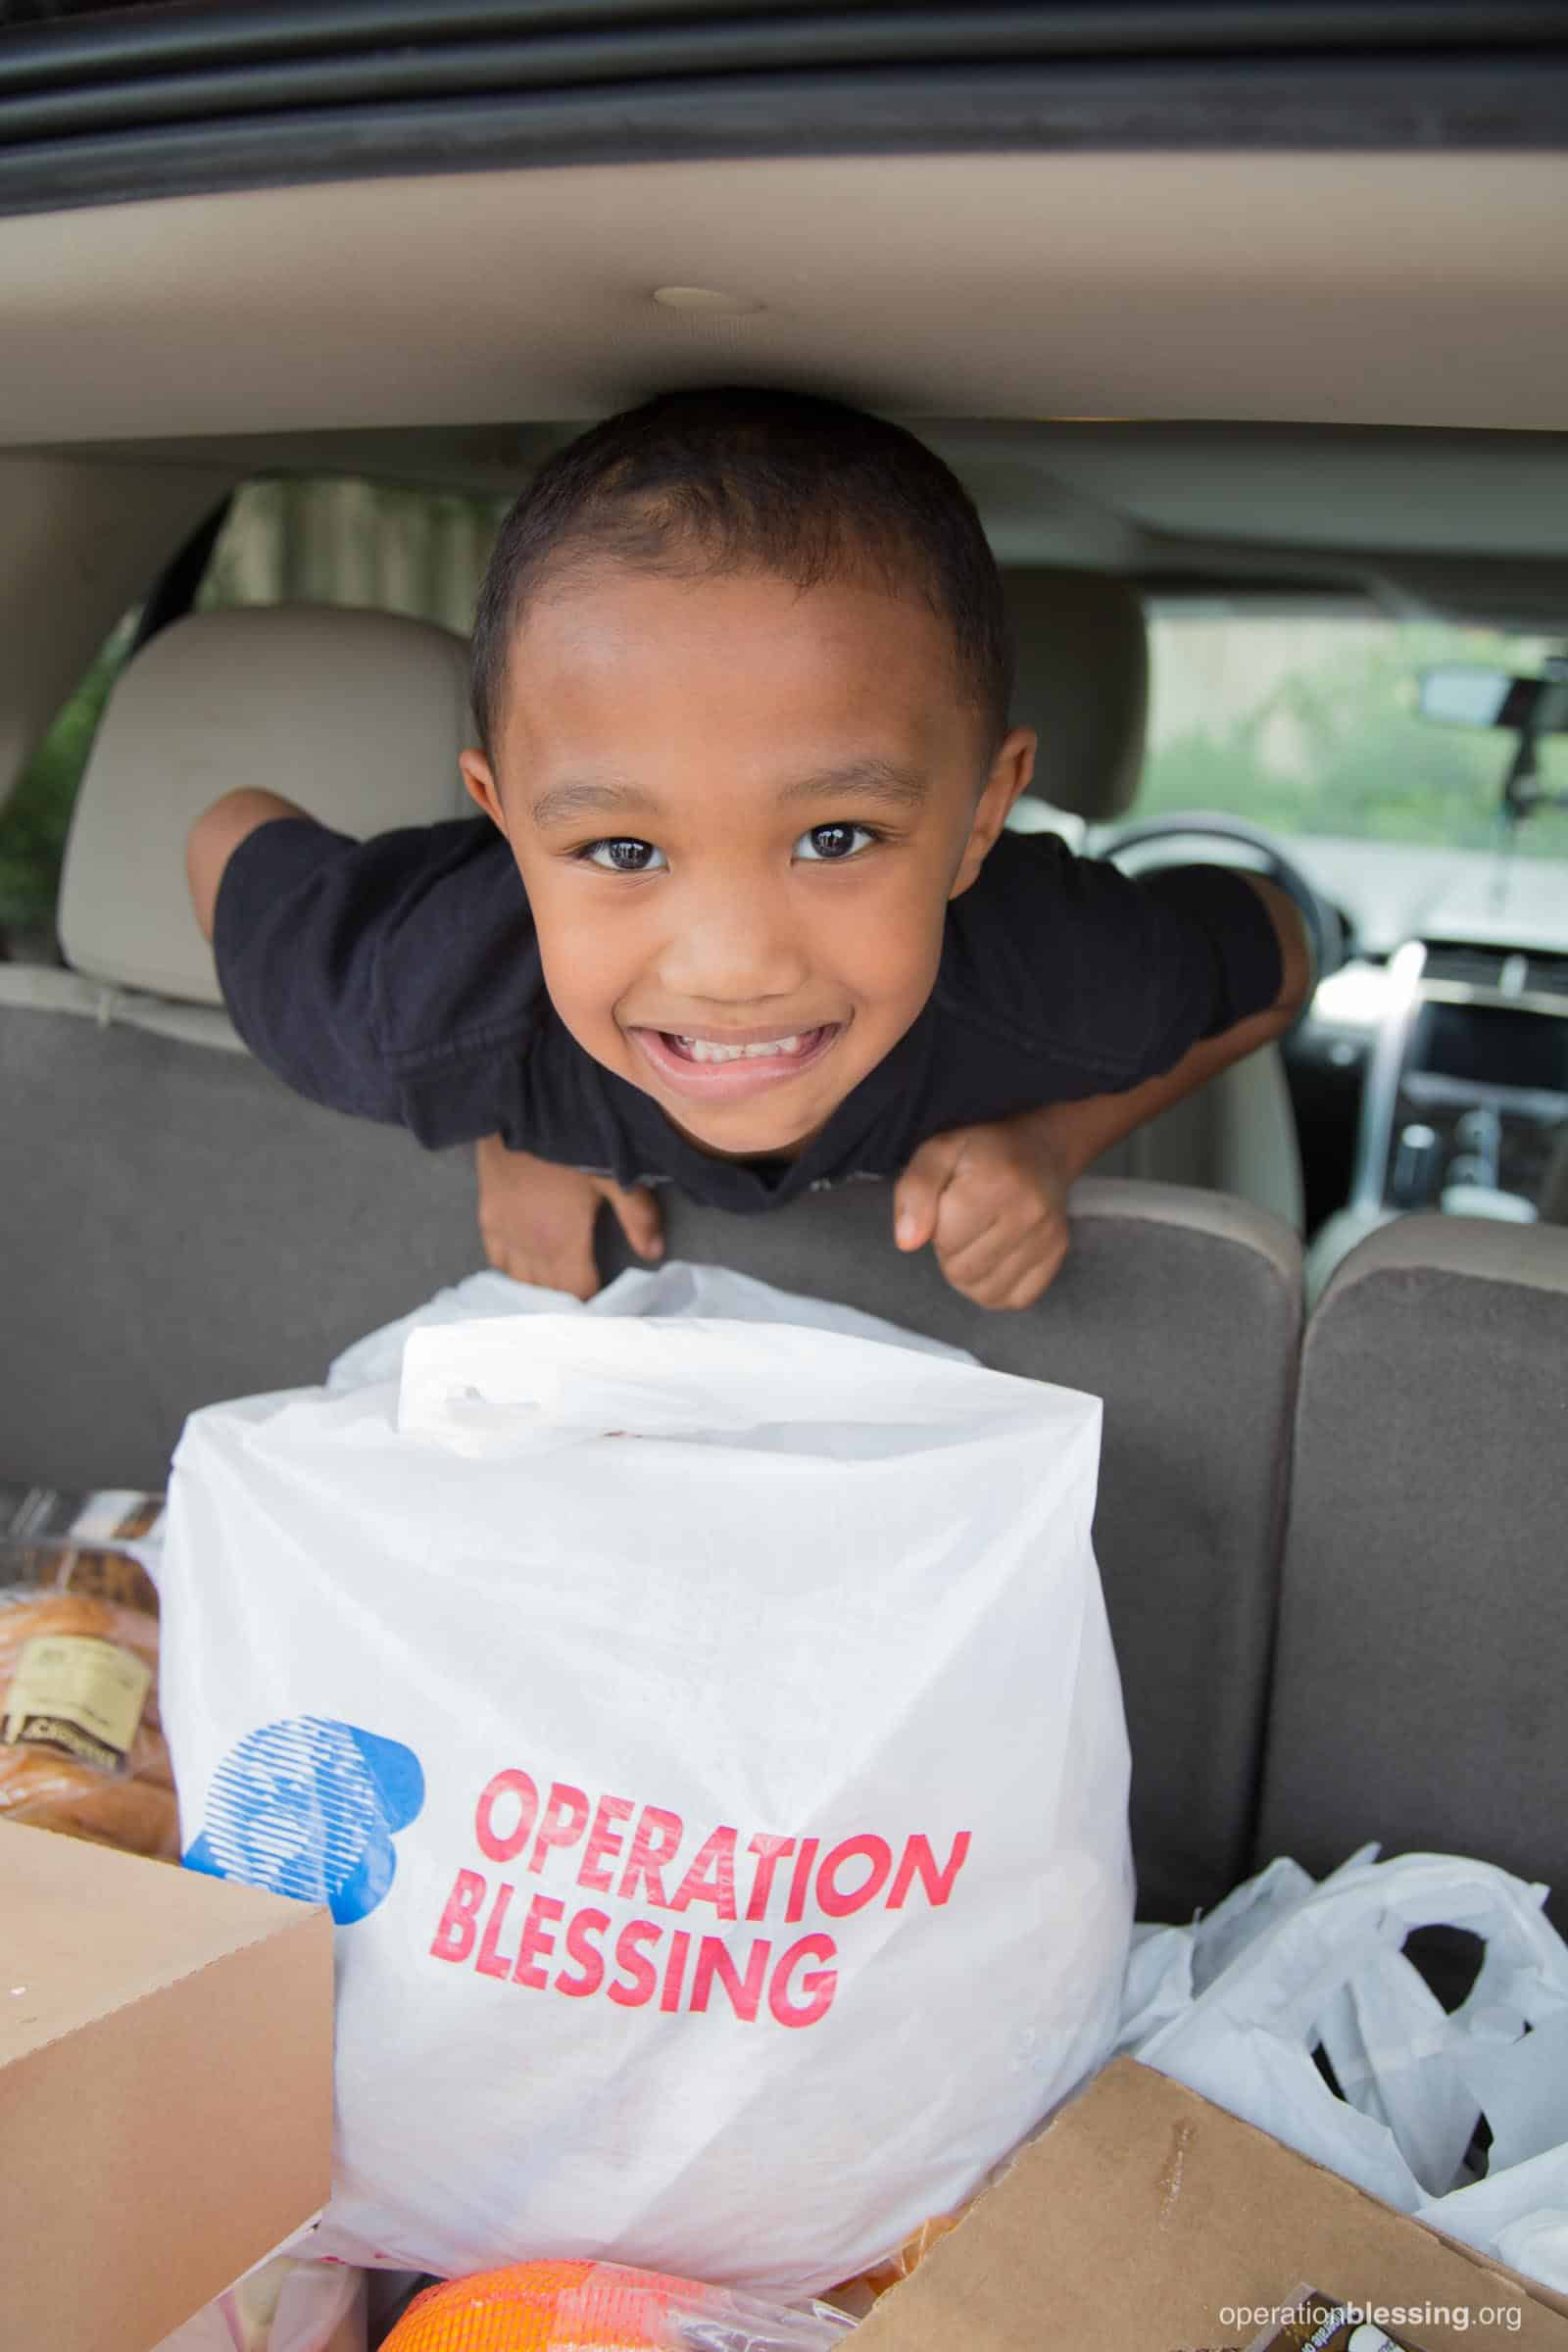 Mayflor's son is excited as he peeks over the backseat of the car to see the groceries provided by Operation Blessing.